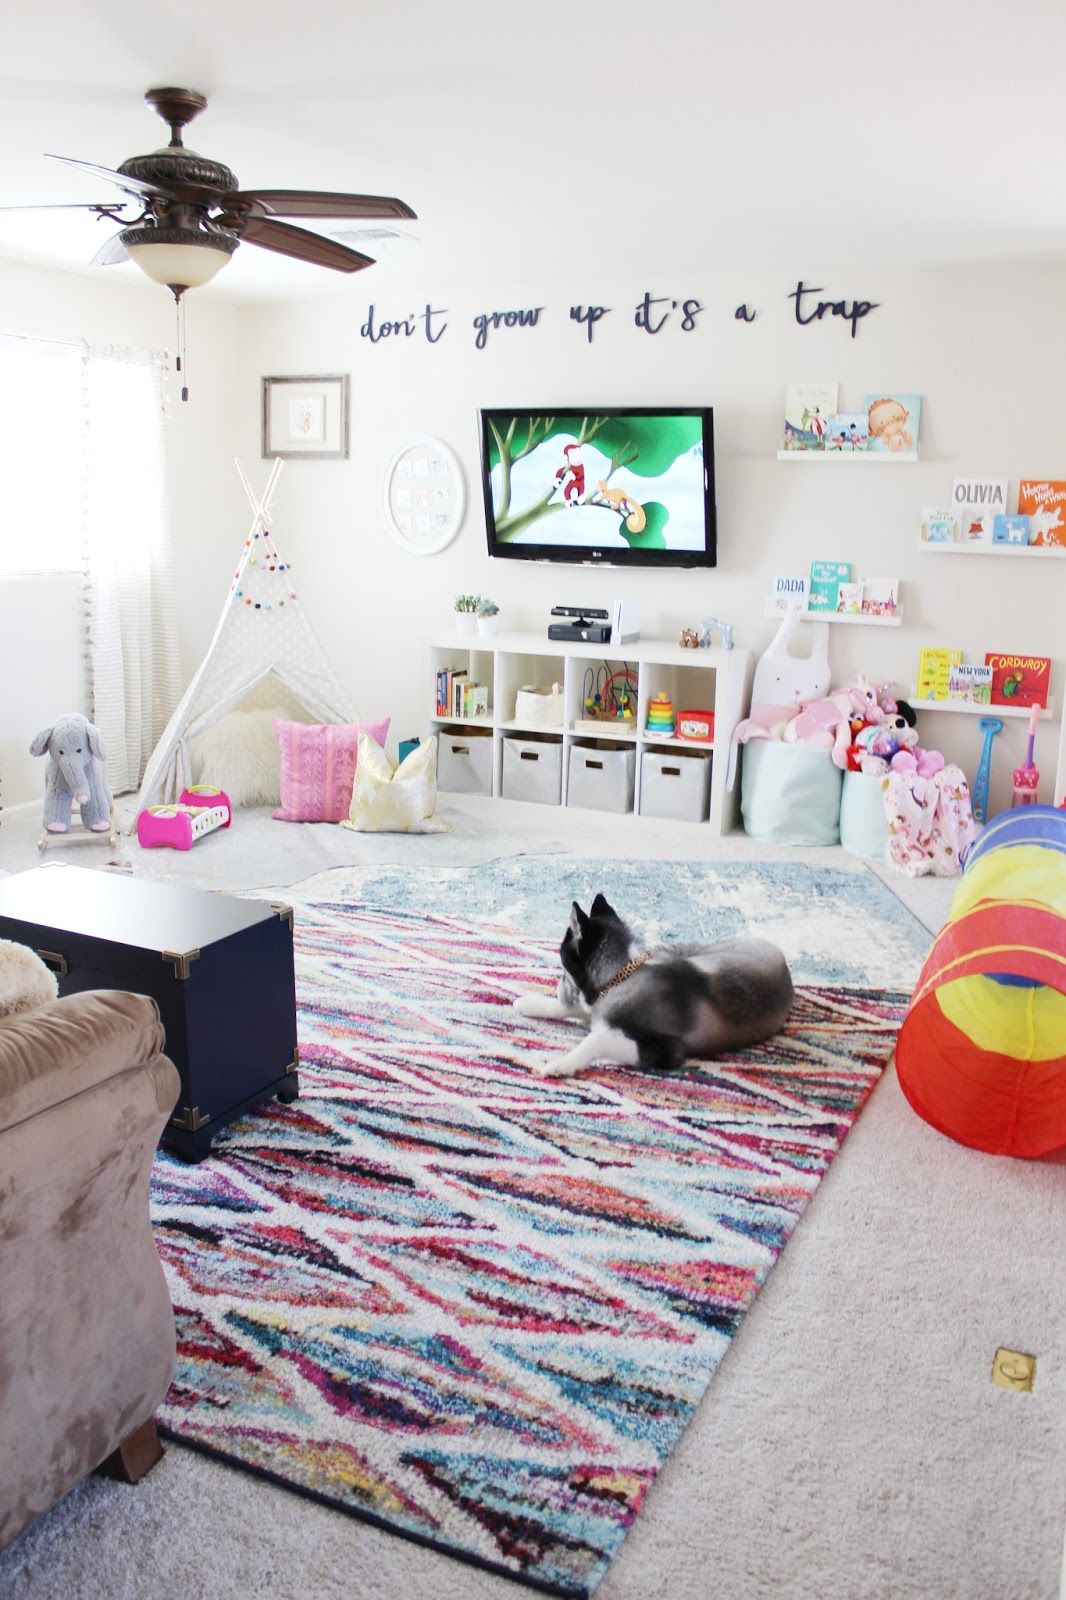 Kids Room Ideas Playroom Reveal By Aubrey Kinch With Rugs Usa S Tracce Distressed Foggy Medallion Rug Albina Streaked Trellis And Serendipity Devour